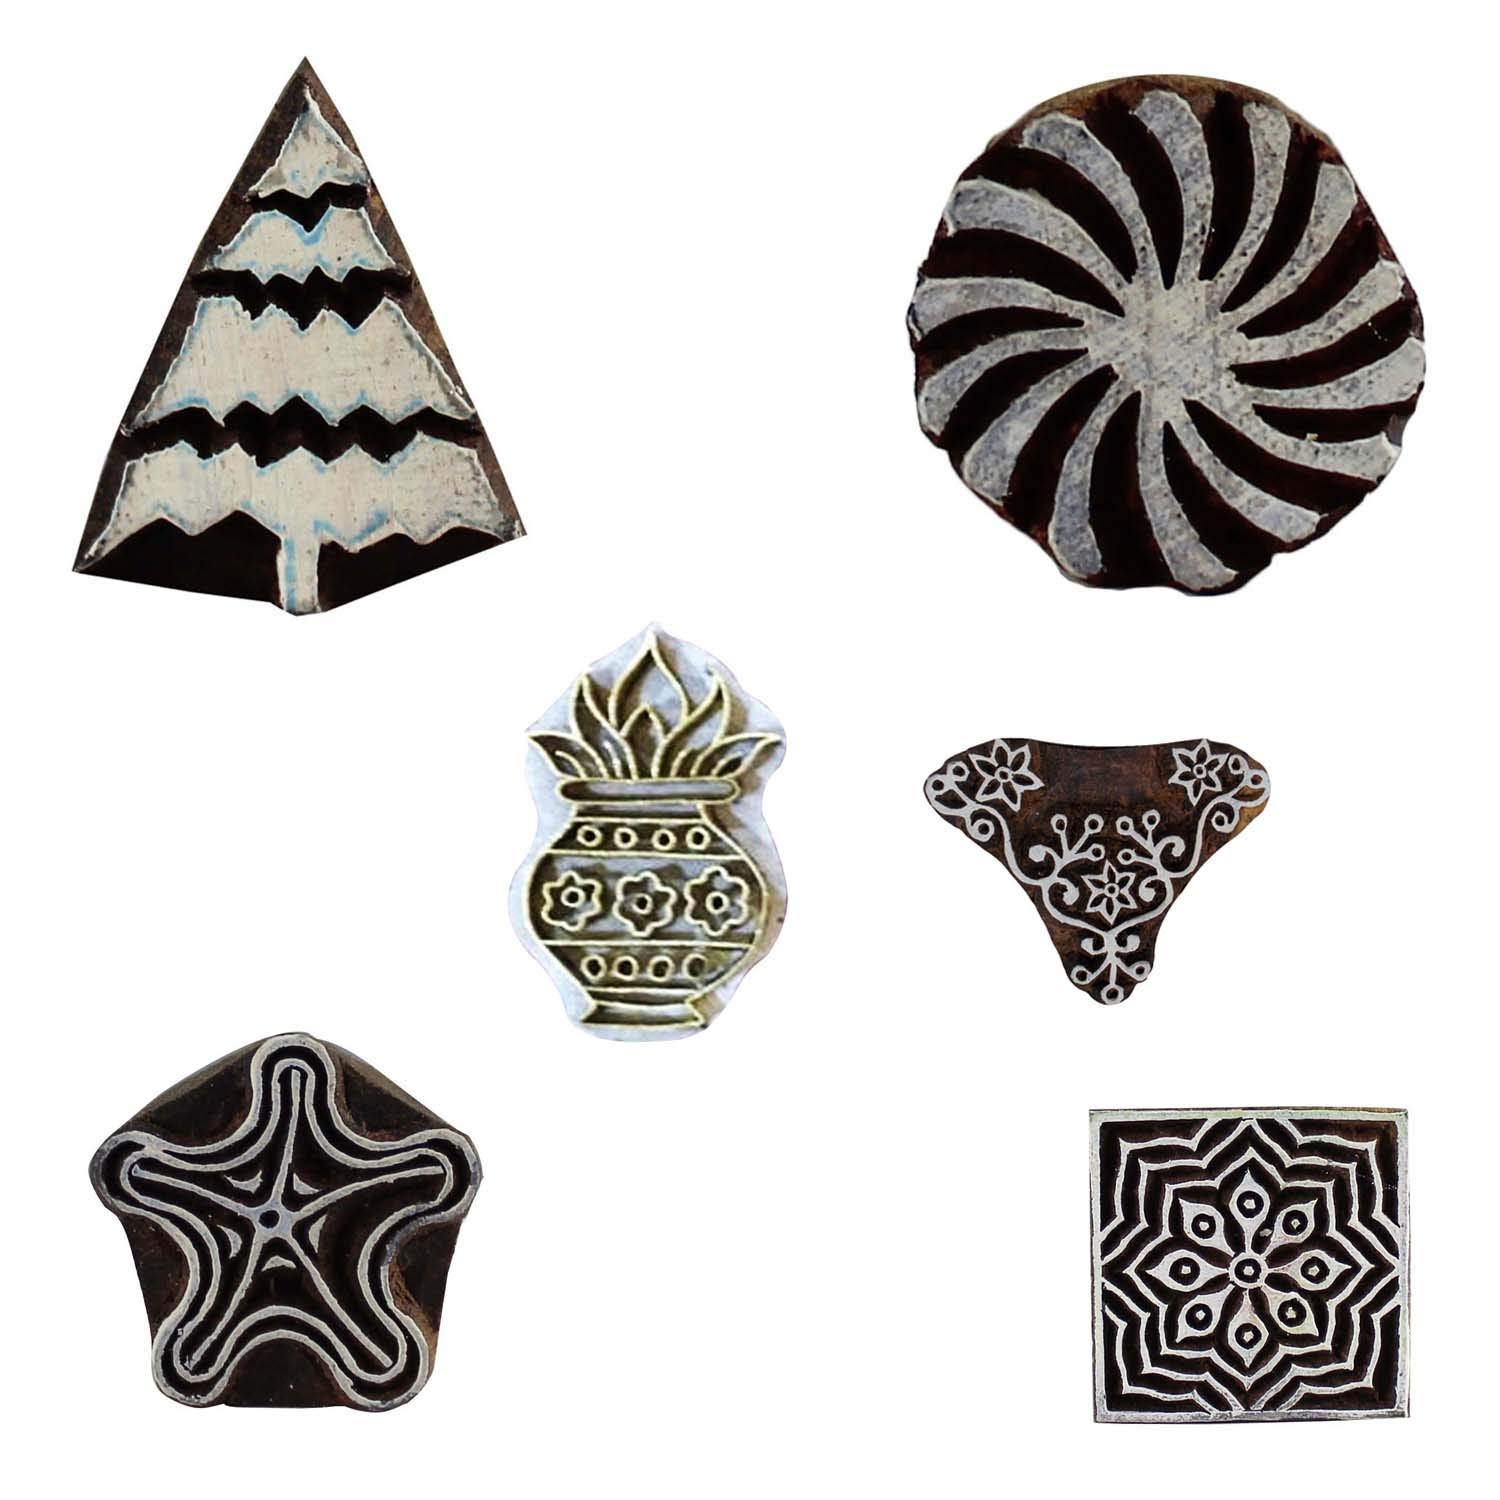 Motif Wooden Printing Block Textile Star Fish, Floral, Christmas Tree and Worship Vase Stamps Craft Clay Pottery Scrapbook Blocks Set 6